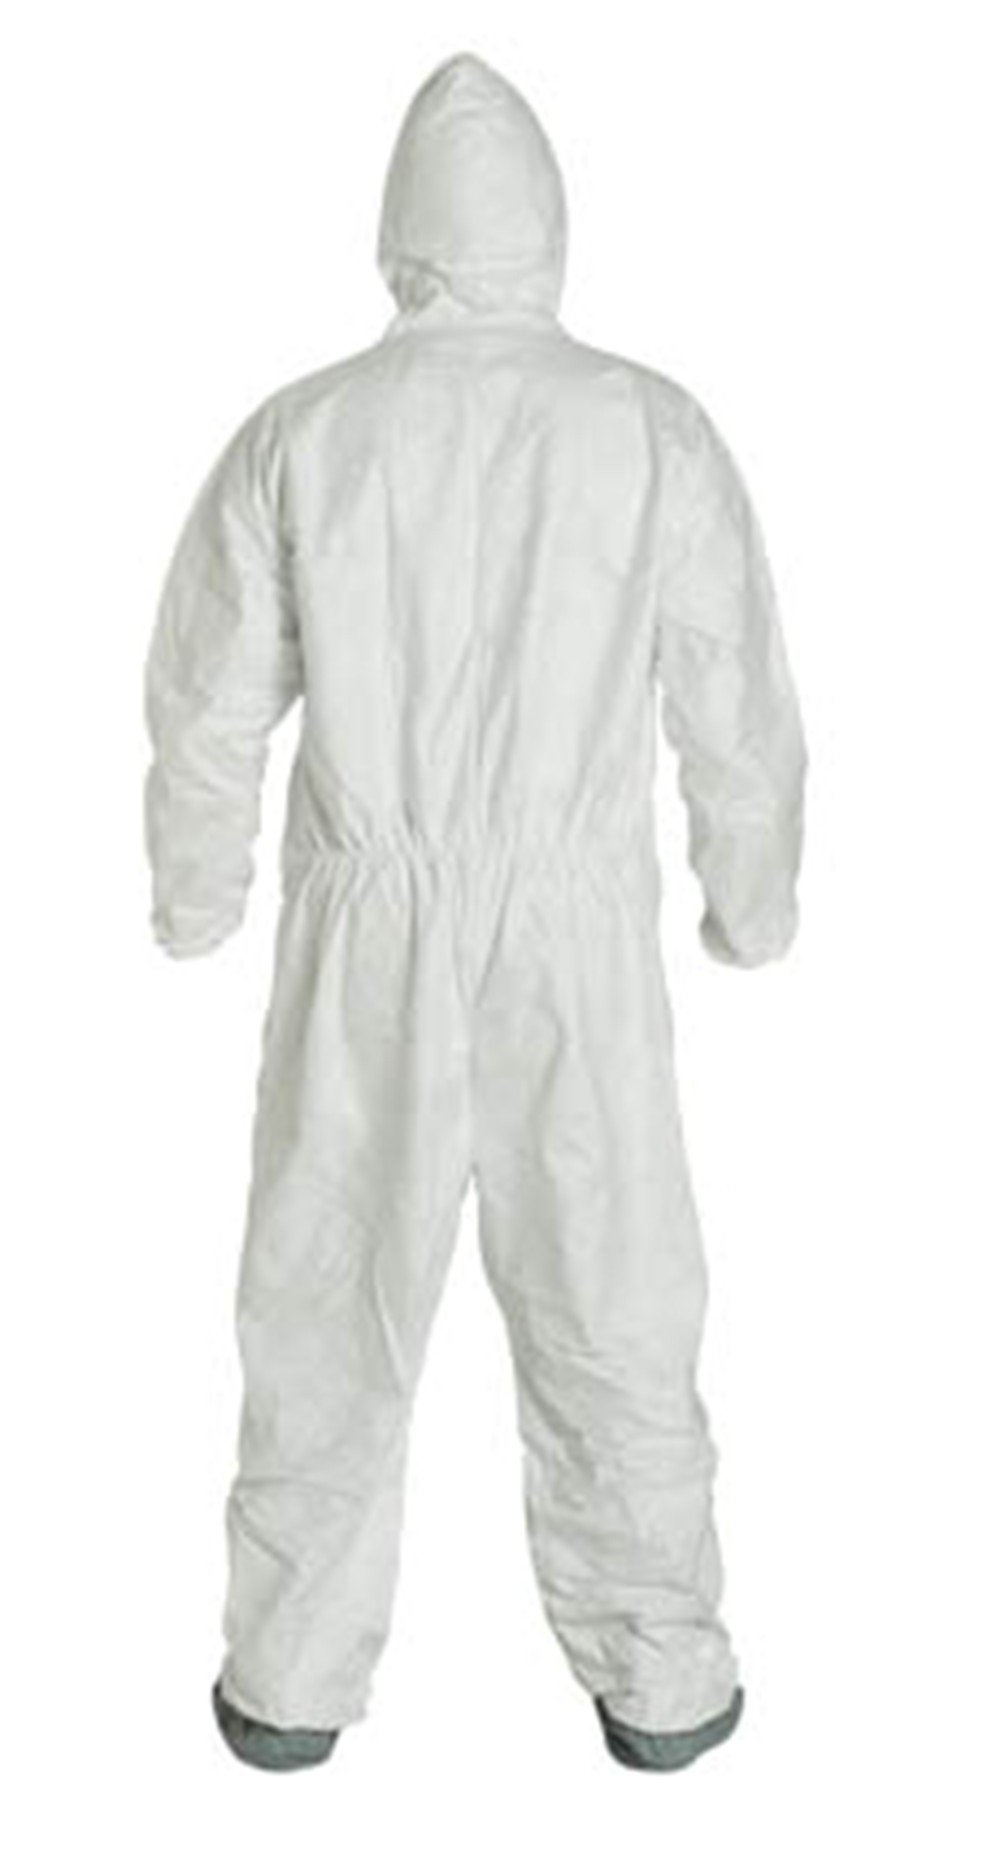 2XL Tyvek Coverall W/ Hood, Zipper, Elastic Wrist & Ankle, With Attached Booties (2XL-25 Suits / 1 Case) TY122S WH-2X-CASE by Tyvek (Image #4)